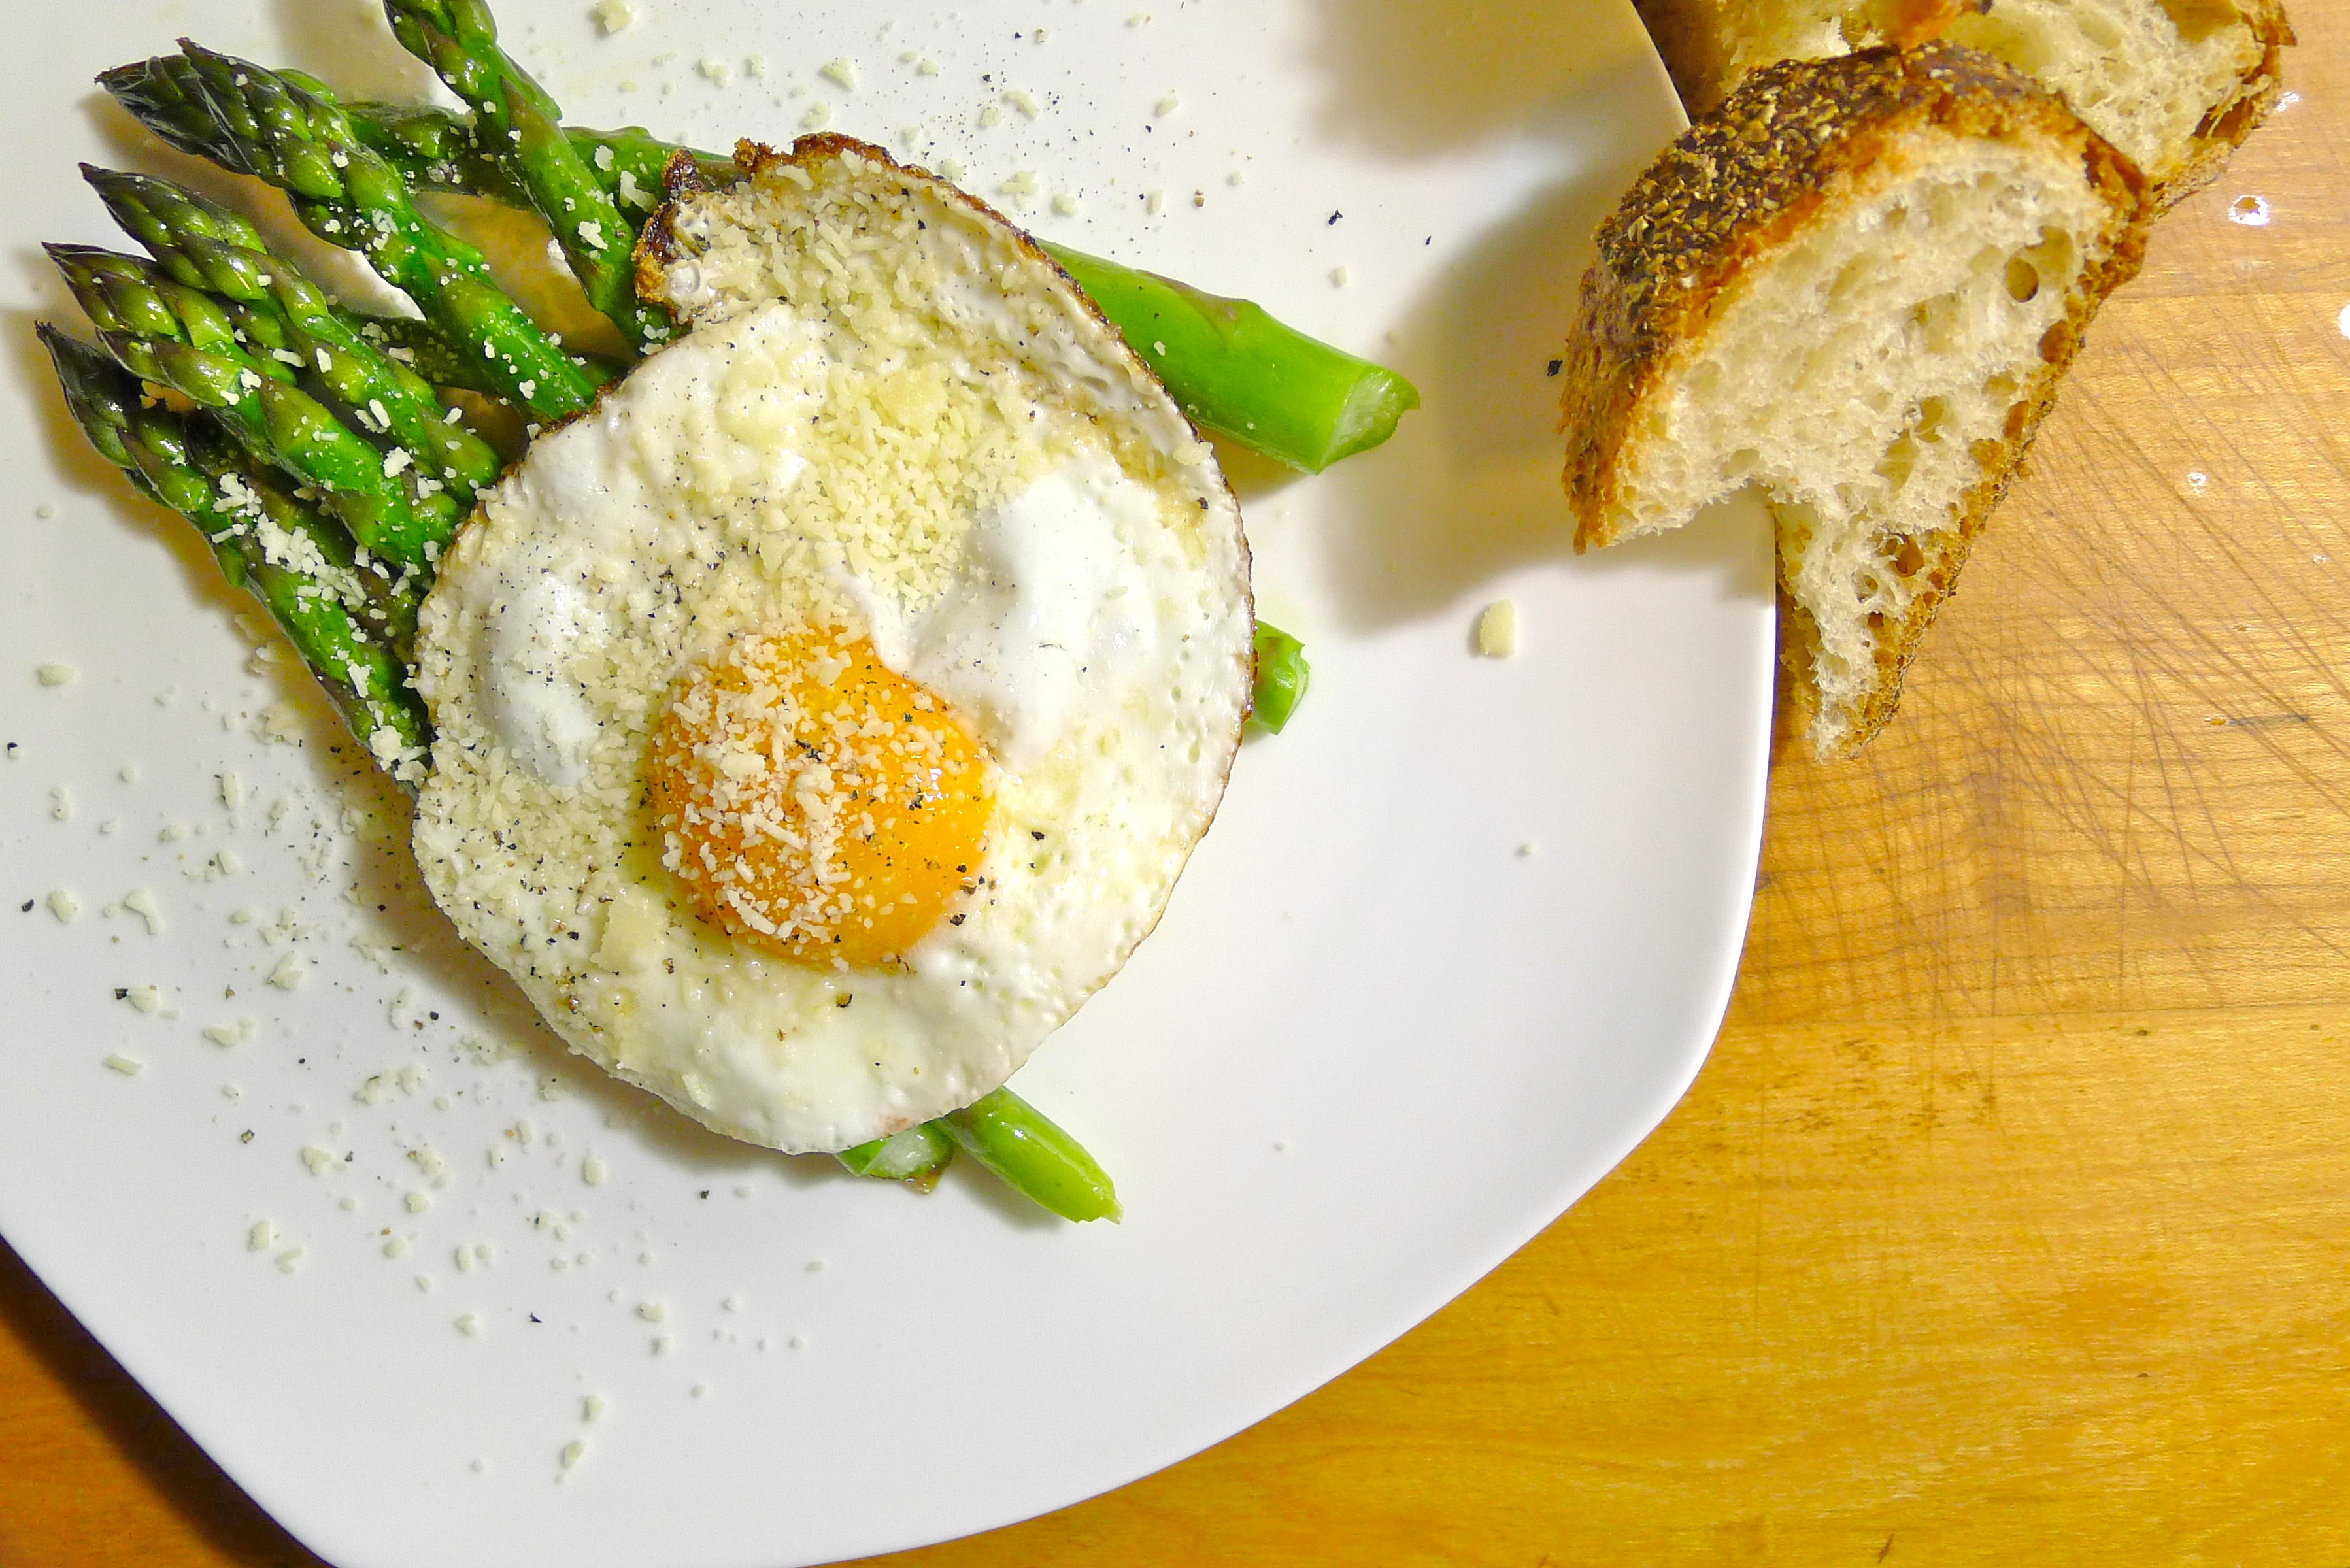 Asparagus with Fried Egg and Parmesan | coolcookstyle